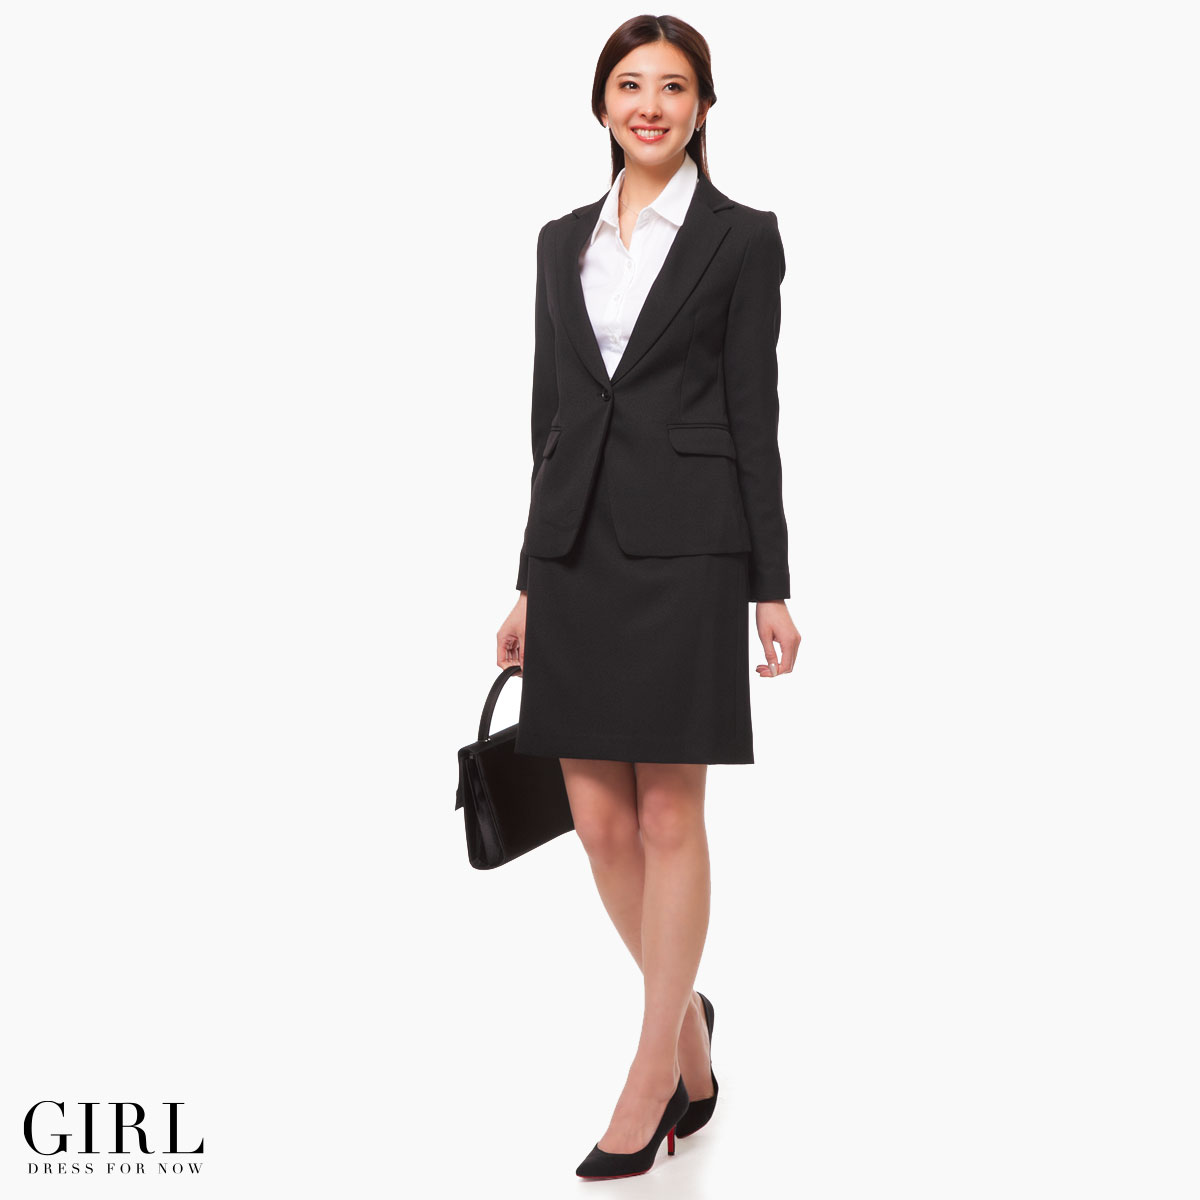 Dress shop girl rakuten global market it is 50 generations for it is 50 generations for 40 generations for black suit worn for a job interview or important occasion female office worker business suit 20s 30 generations ombrellifo Image collections